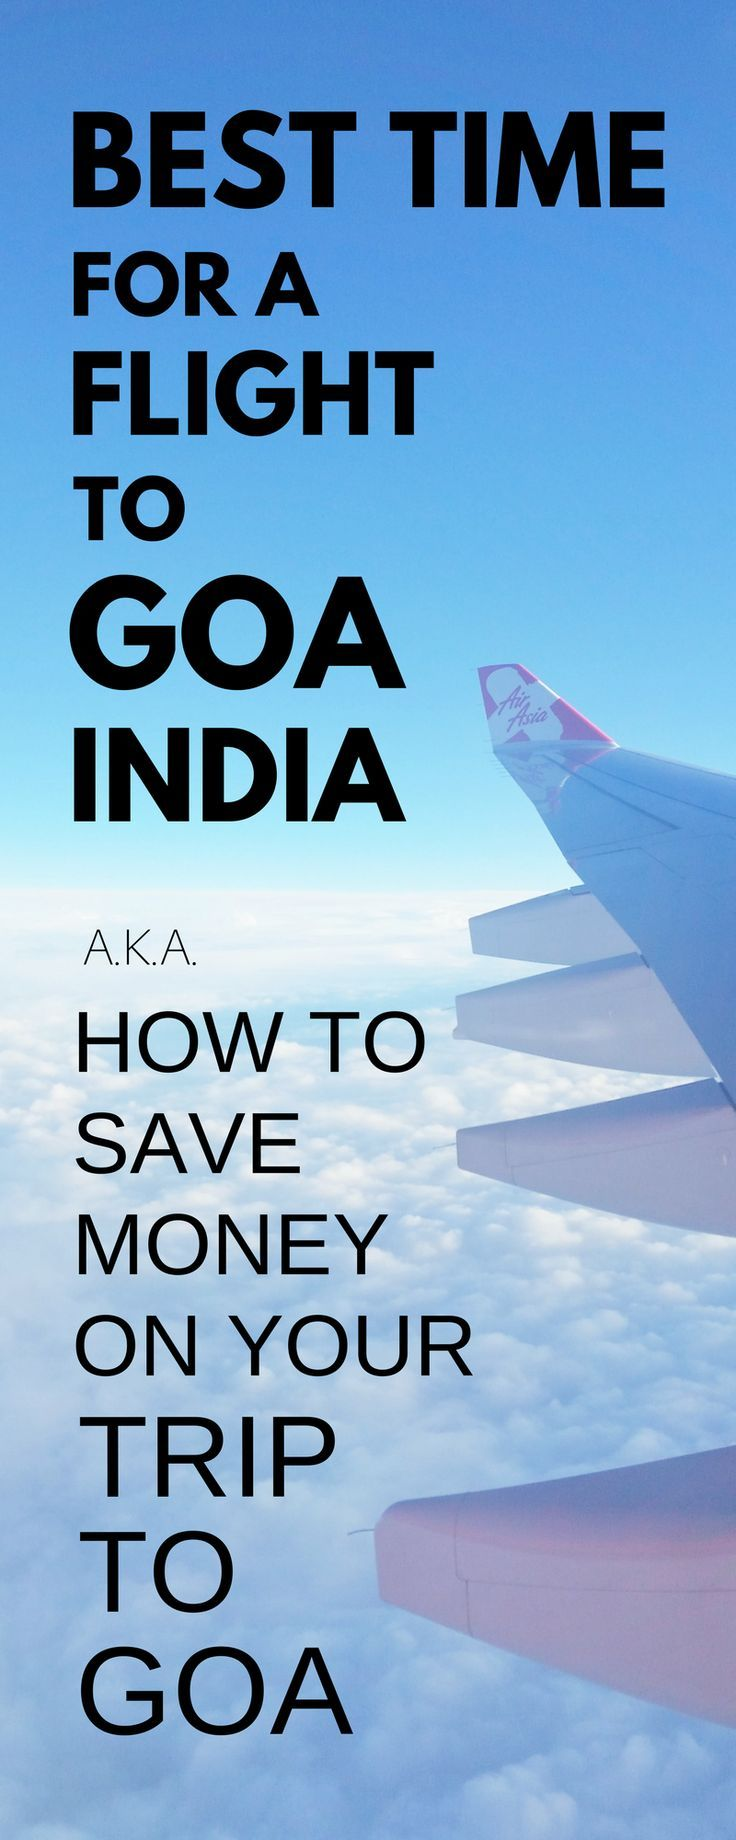 How to find the cheapest time to fly to Goa Cheap